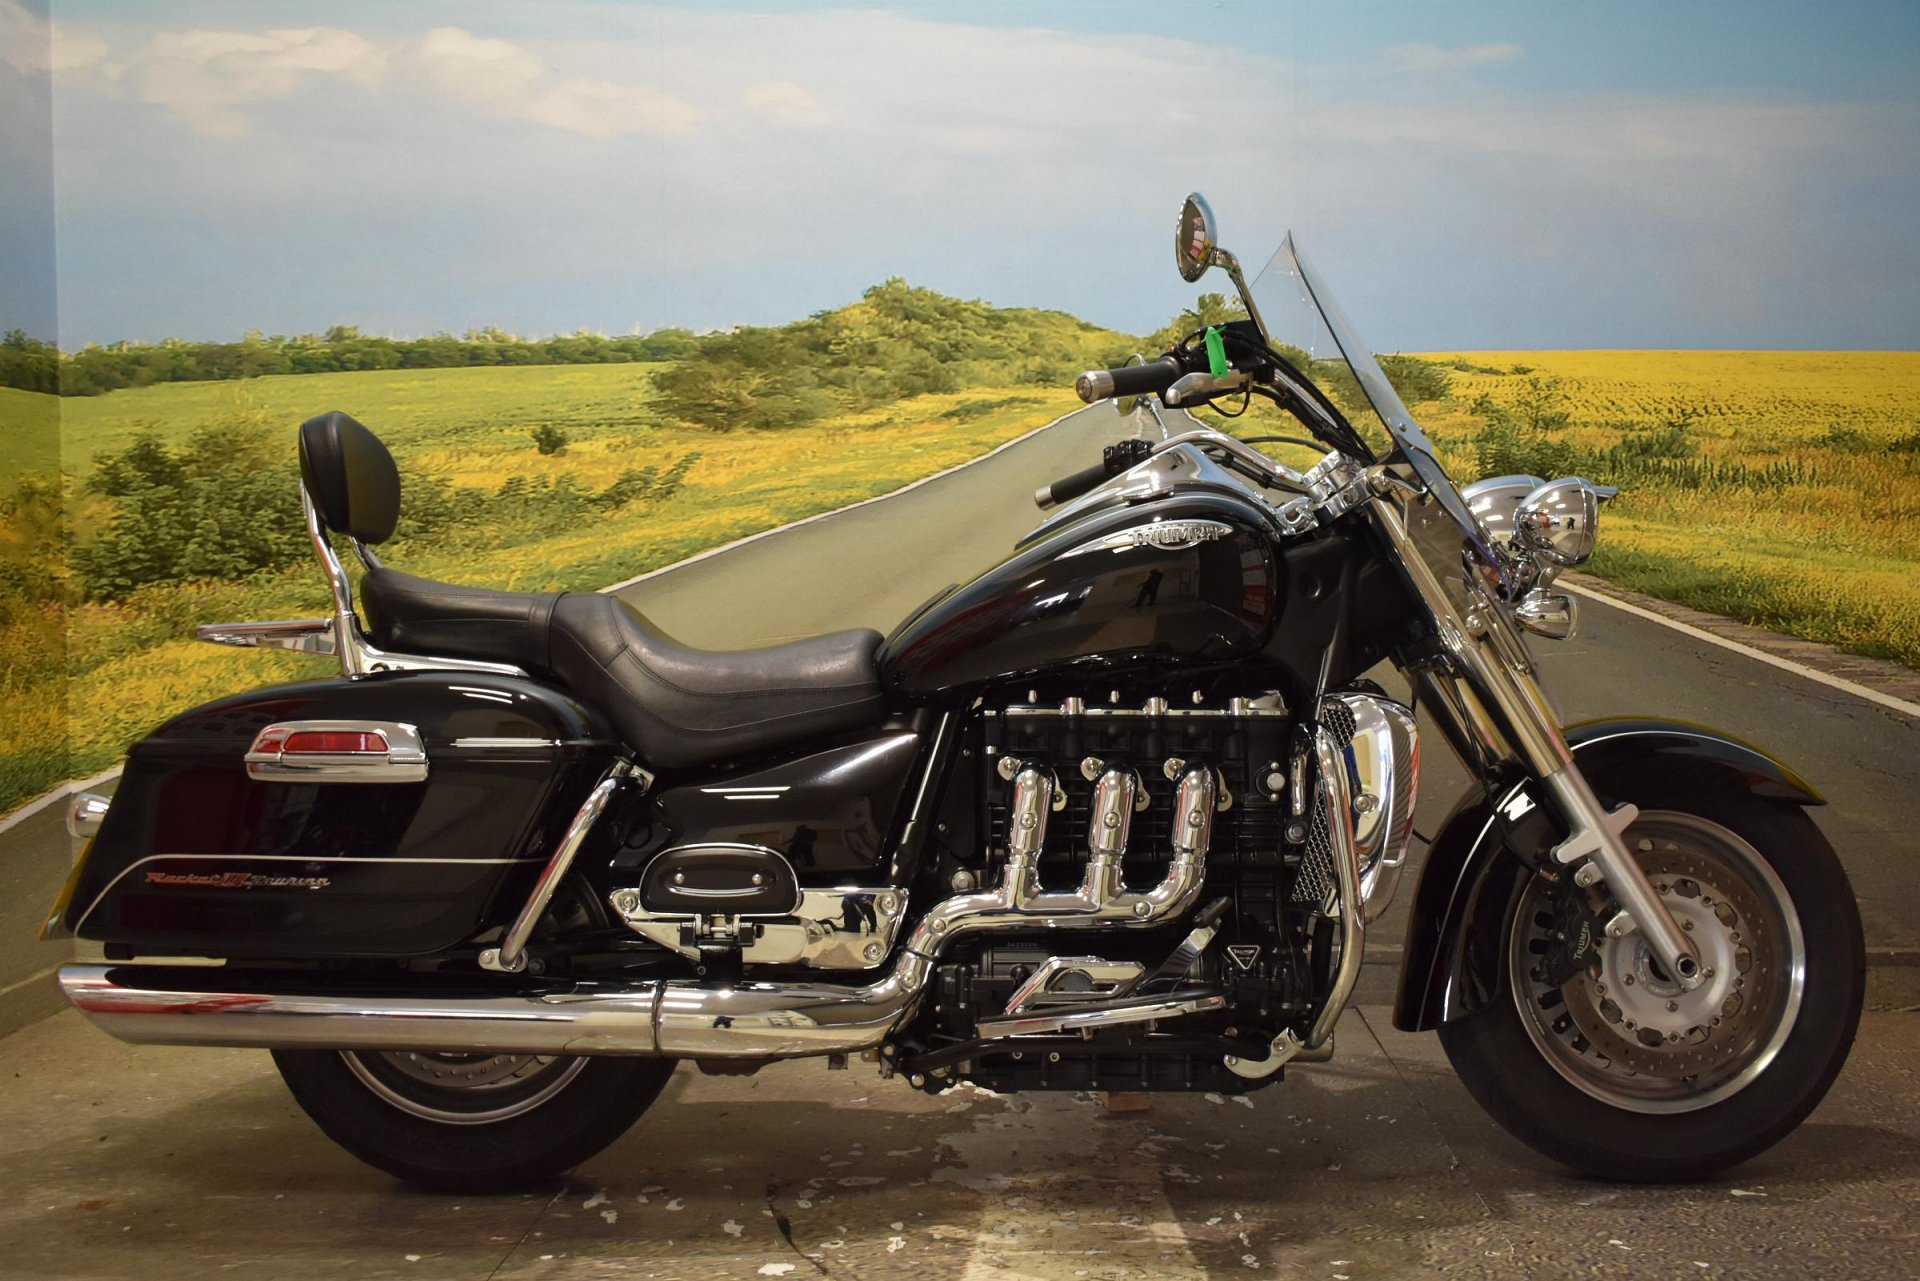 2010 Triumph Rocket 111 Touring for sale in Derbyshire